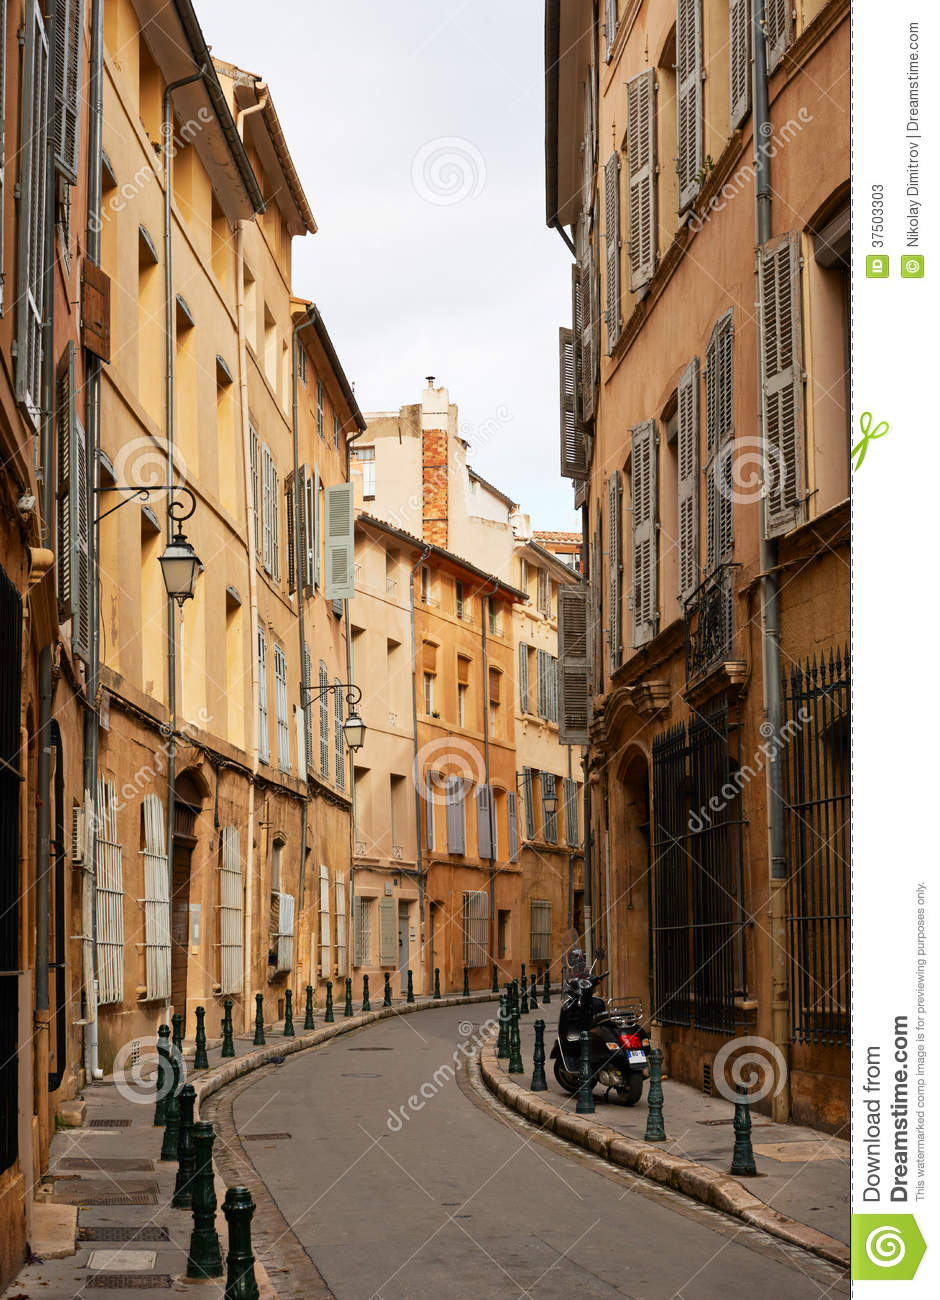 street in aix en provence stock image image of provence 37503303. Black Bedroom Furniture Sets. Home Design Ideas